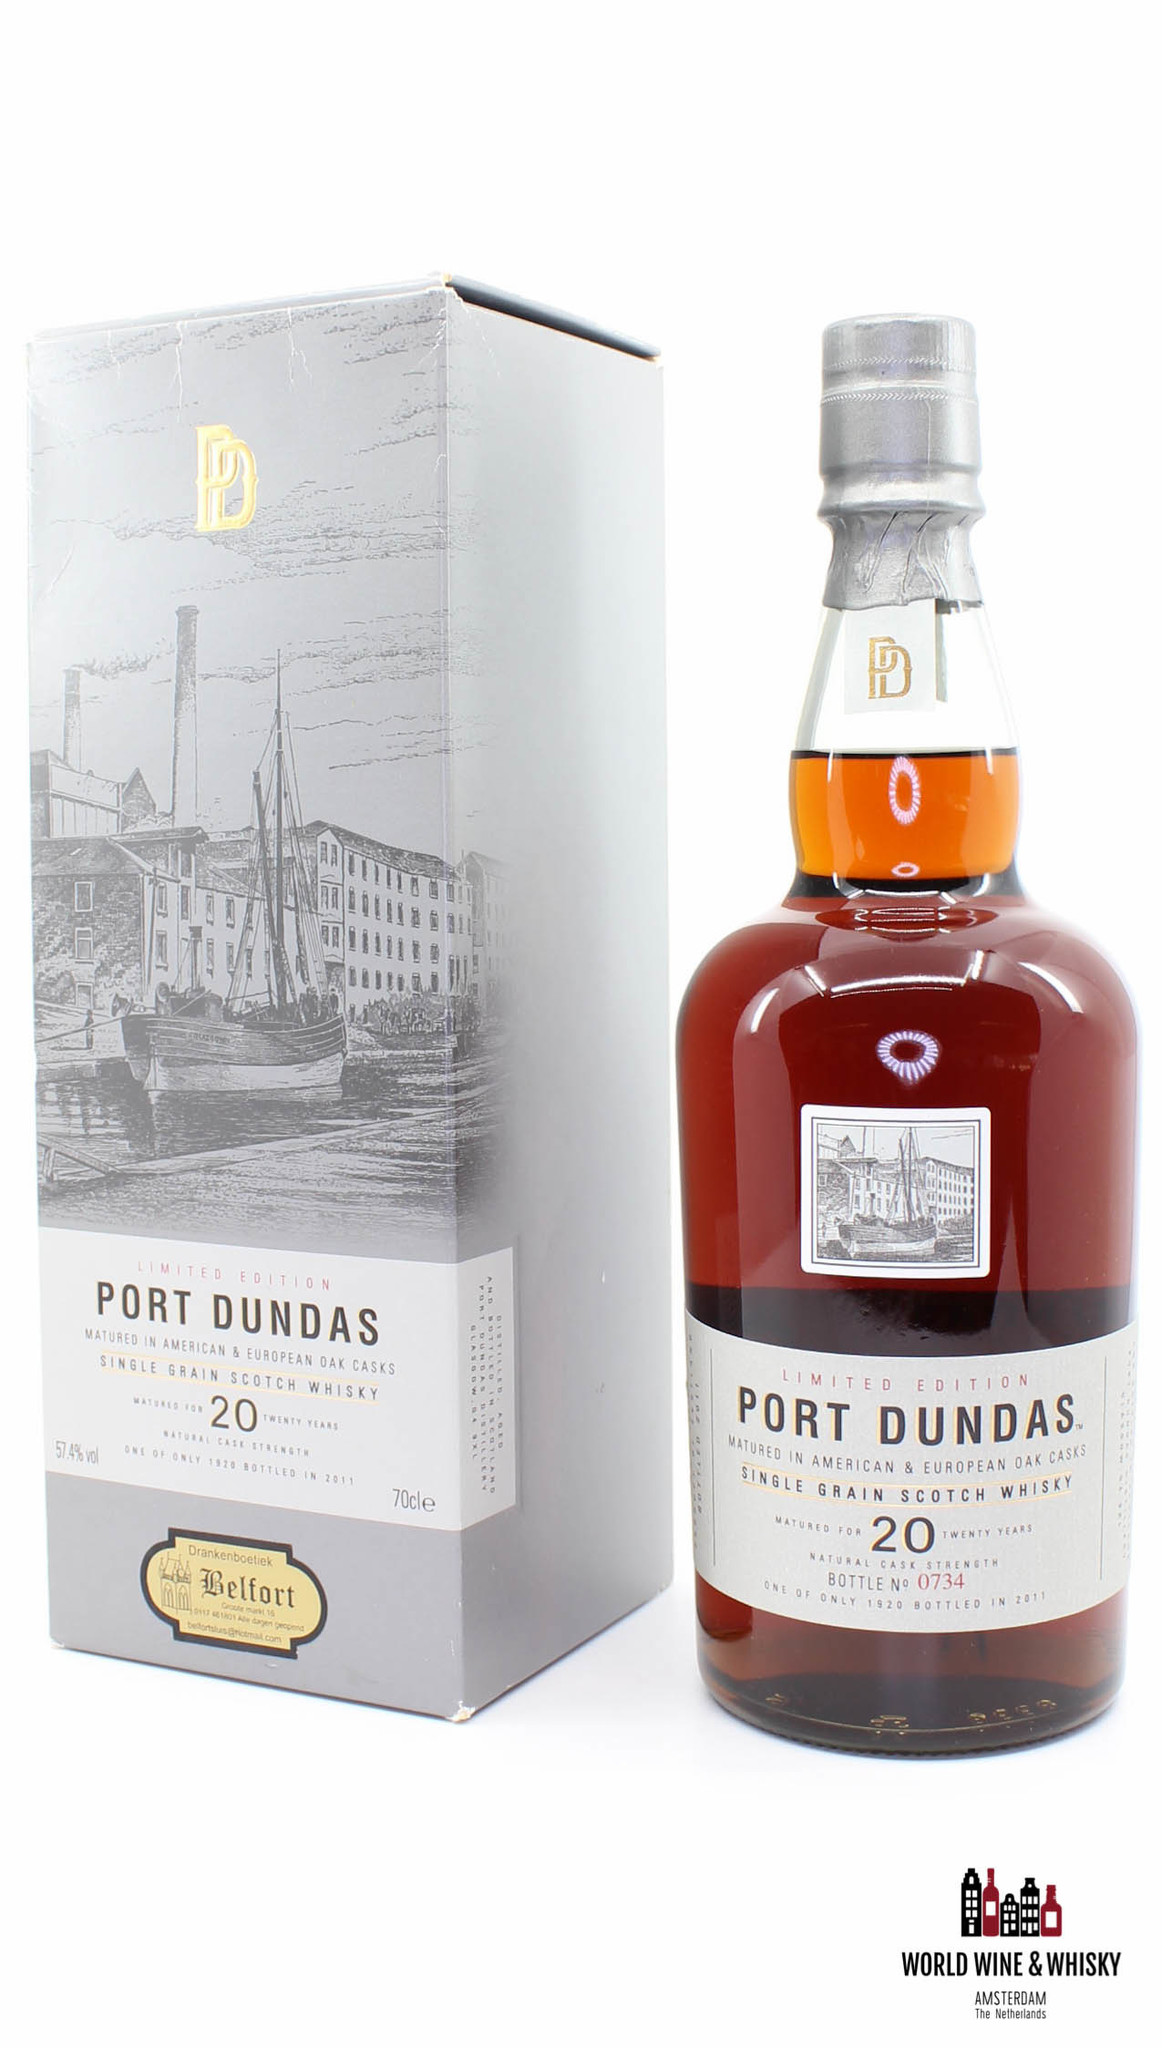 Port Dundas Port Dundas 20 Years Old 1990 2011 Limited Edition 57.4%